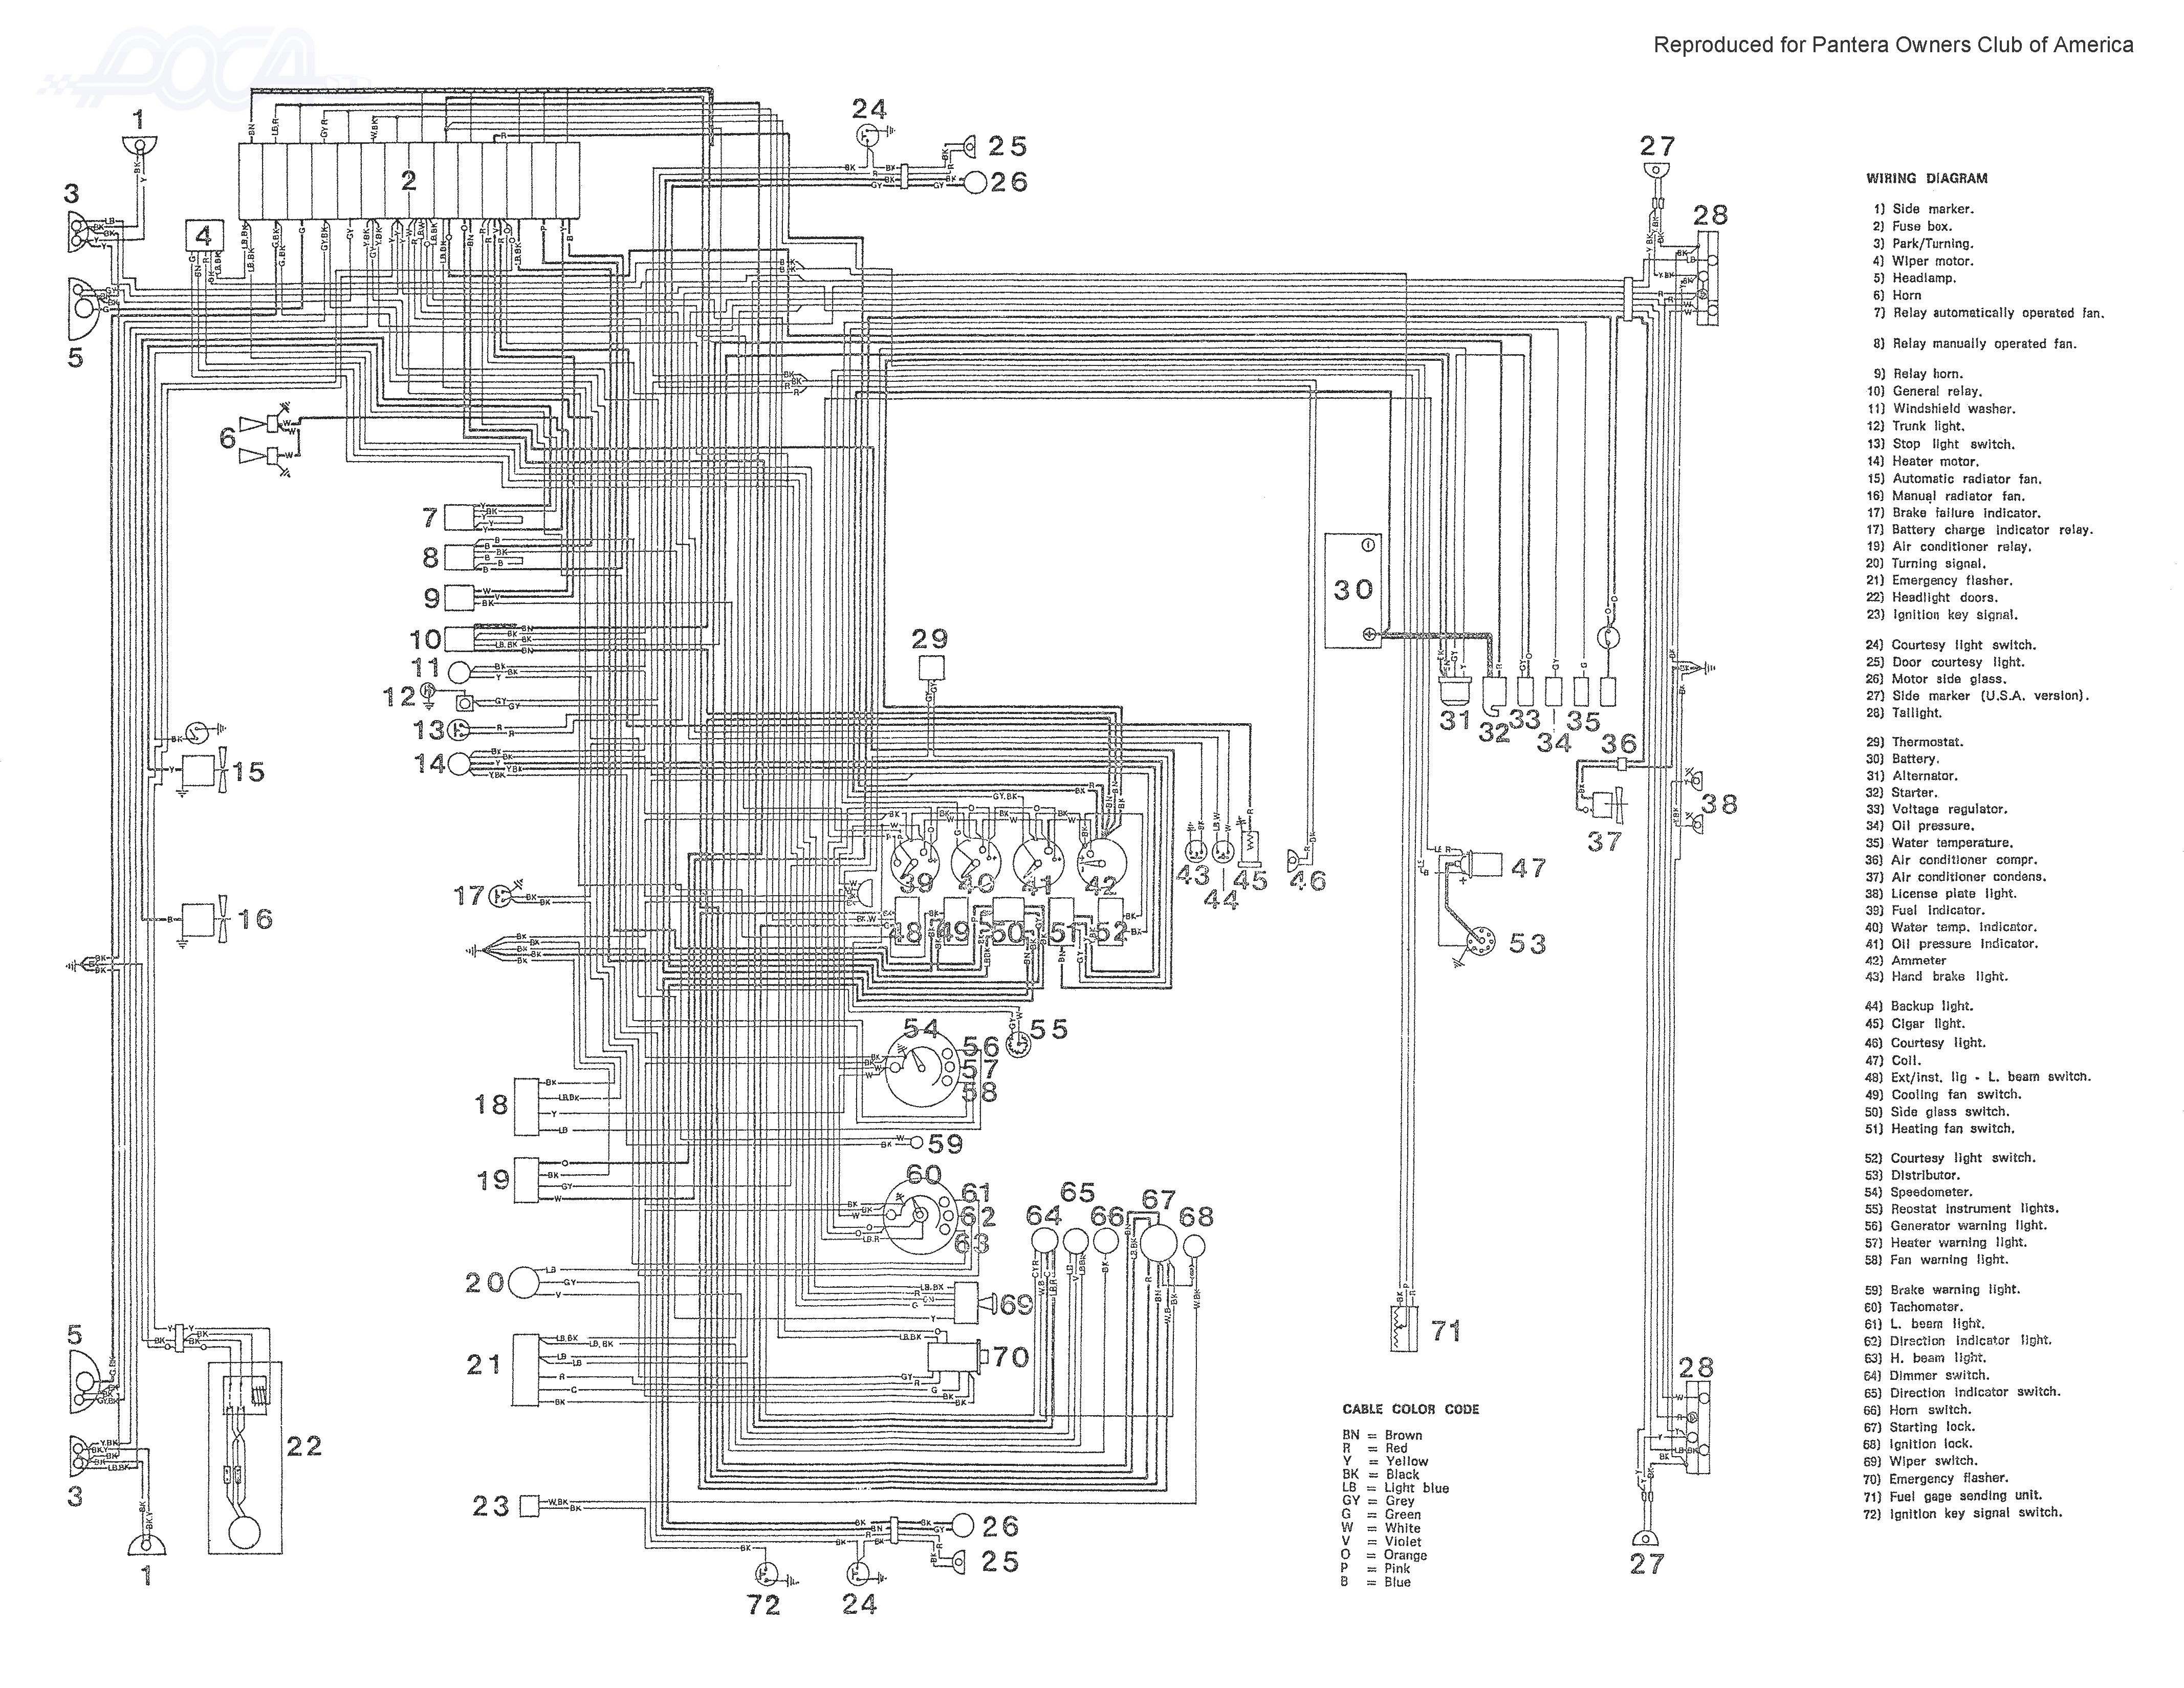 Mercedes Car Wiring Diagram 18 Free Schematic and Wiring Diagram for Mercedes Benz Wiring Of Mercedes Car Wiring Diagram